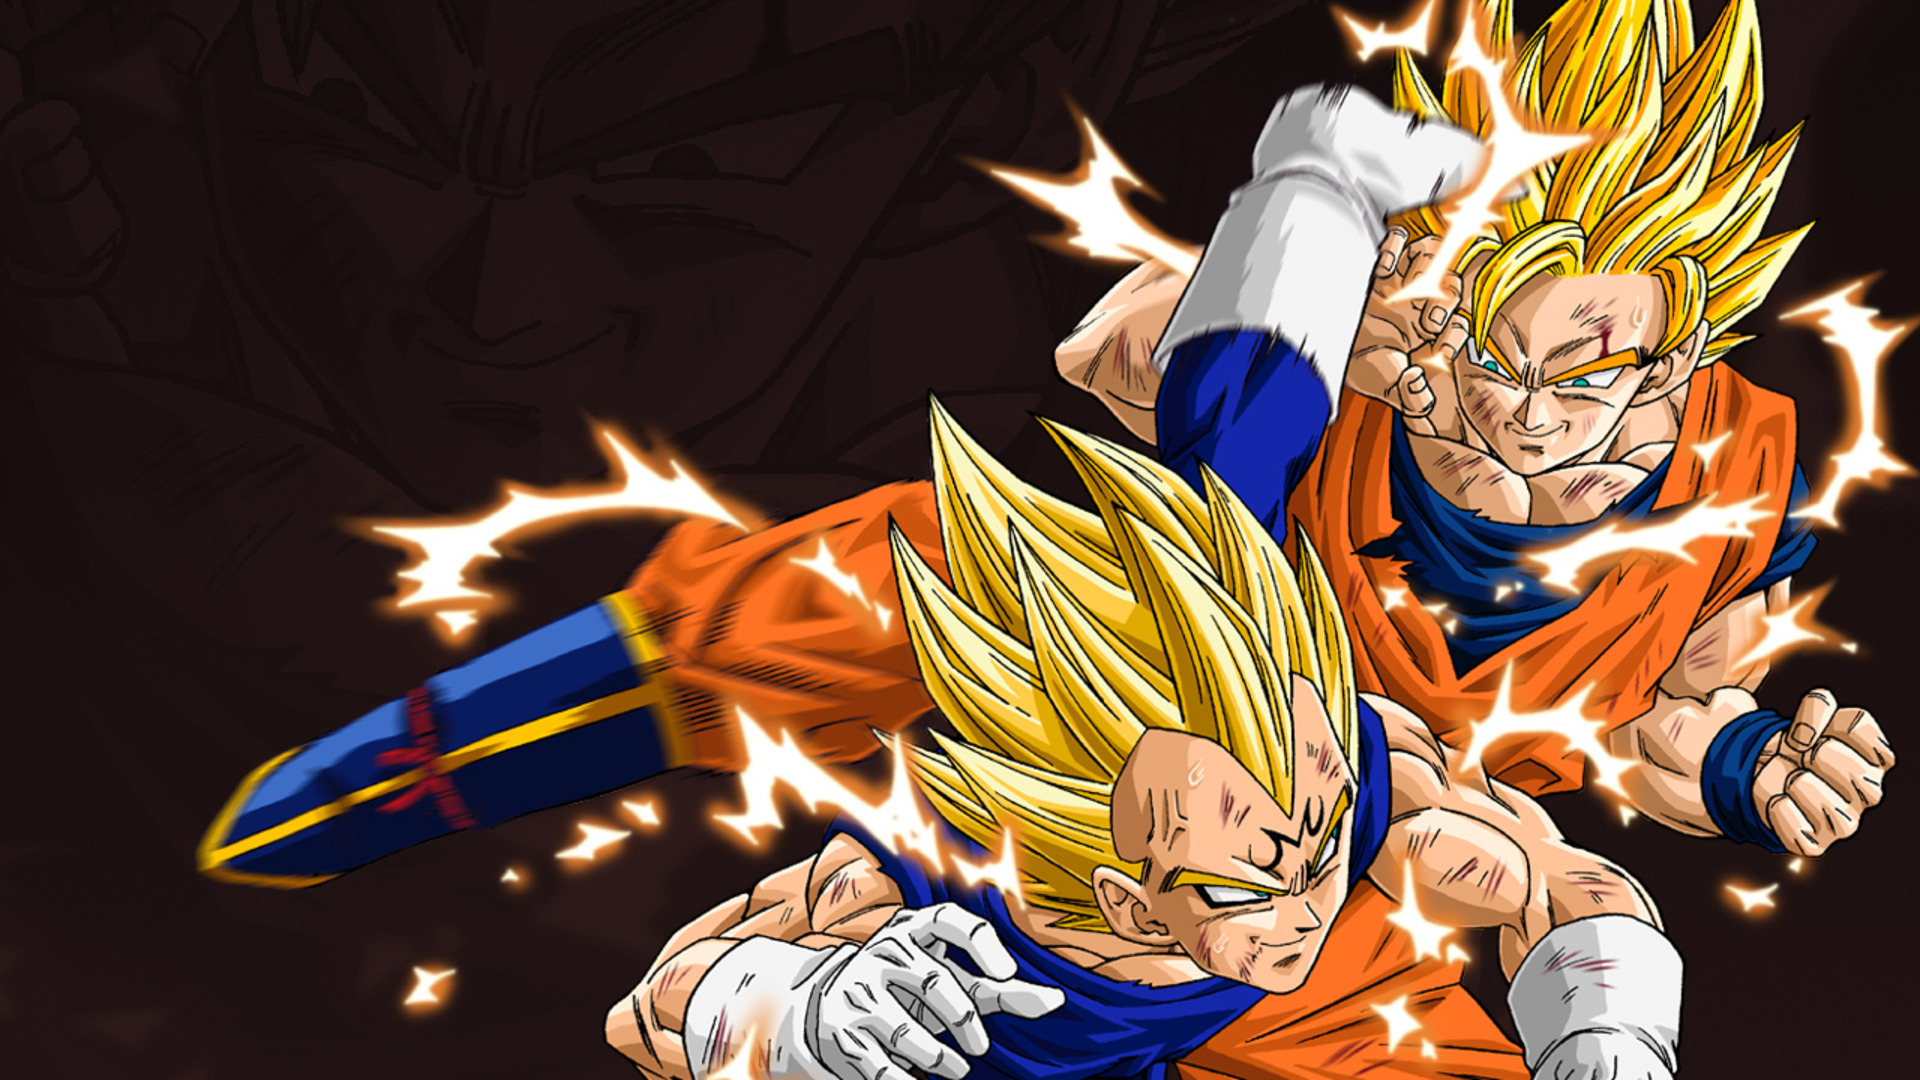 Dragon Ball Z Hd Wallpaper Background Image 1920x1080 Id